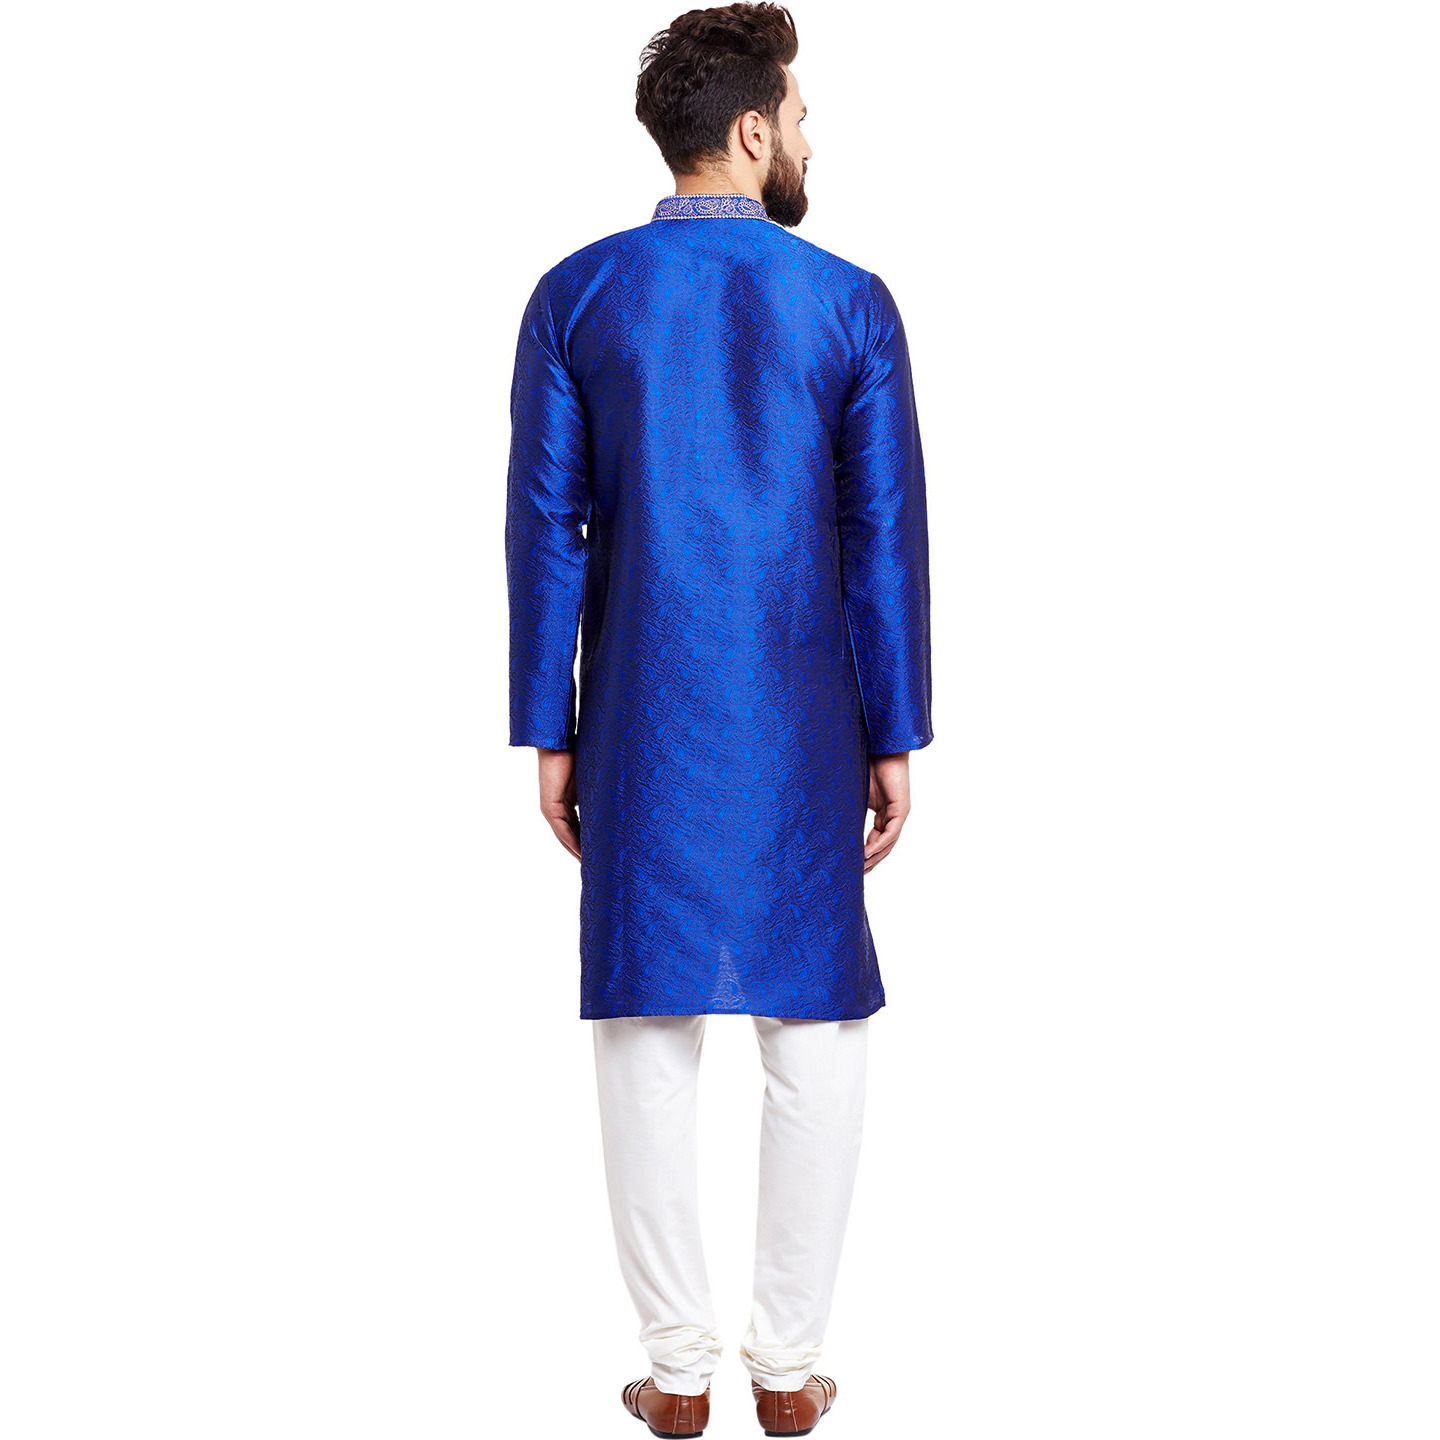 Mens Silk Royal Blue Self design pattern Designer Kurta Churidaar Set Long Sleeve Ban collar Regular Fit